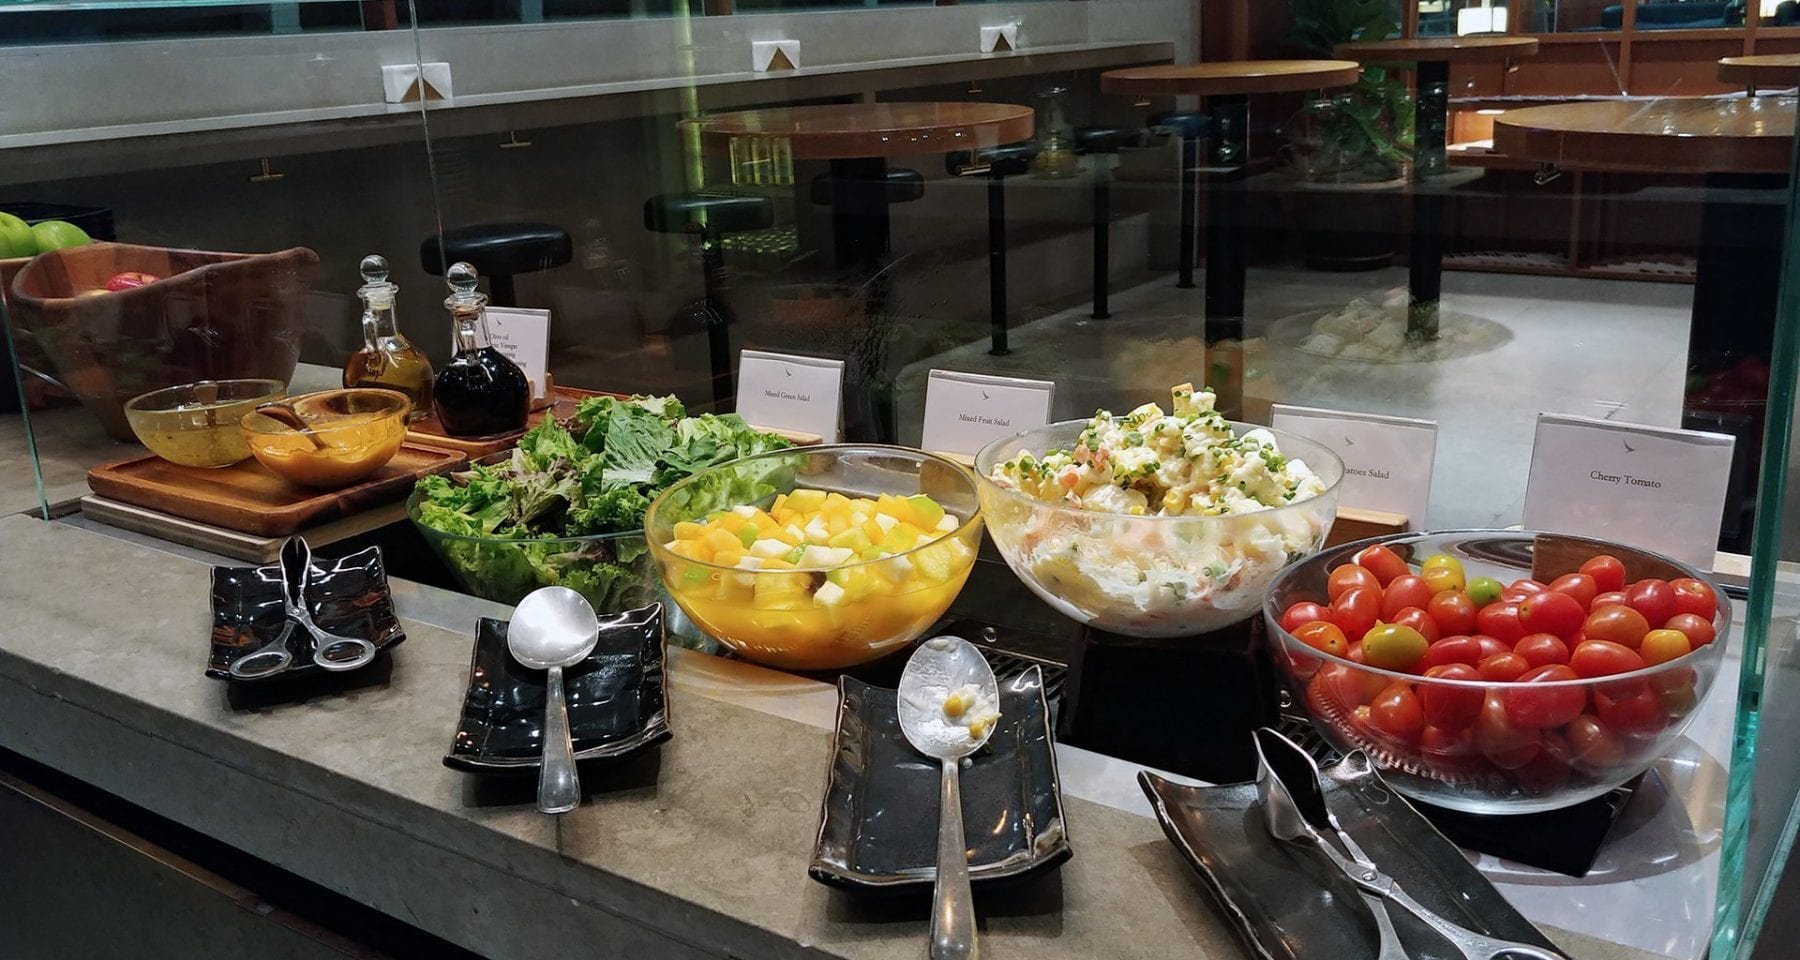 Cathay Pacific Lounge salad bar